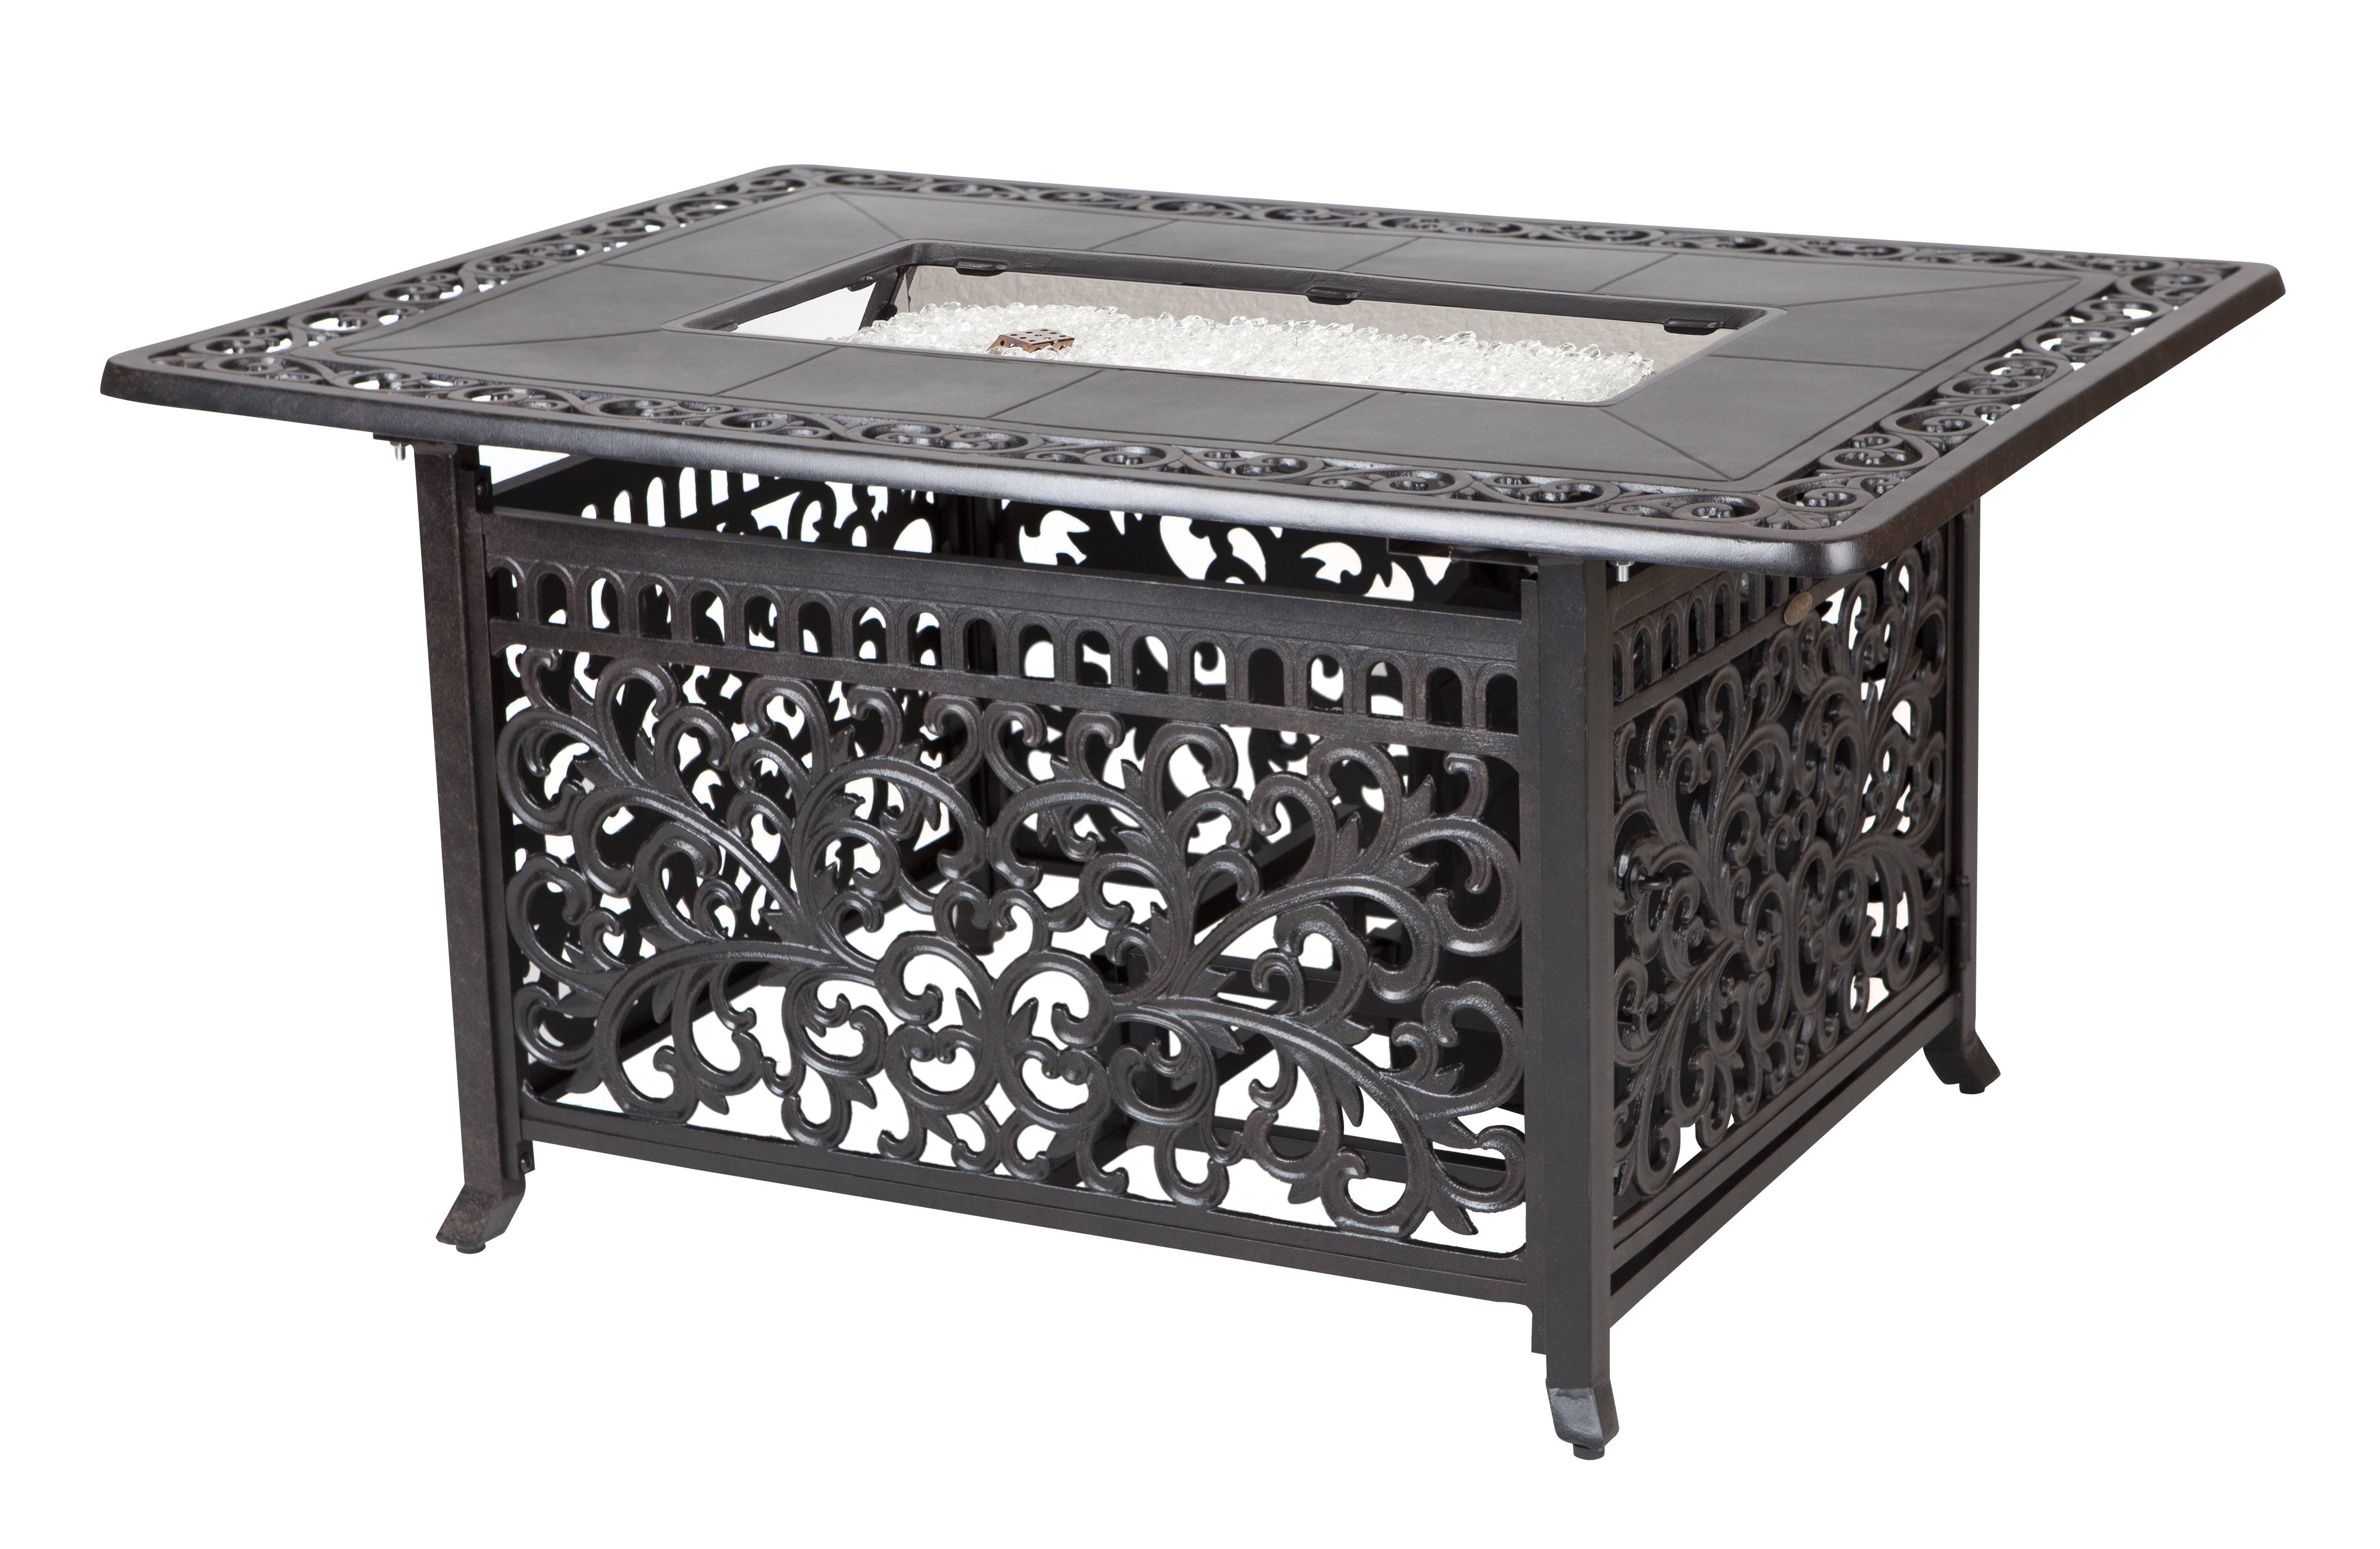 sedona cast aluminum rectangular lpg fire pit costco com